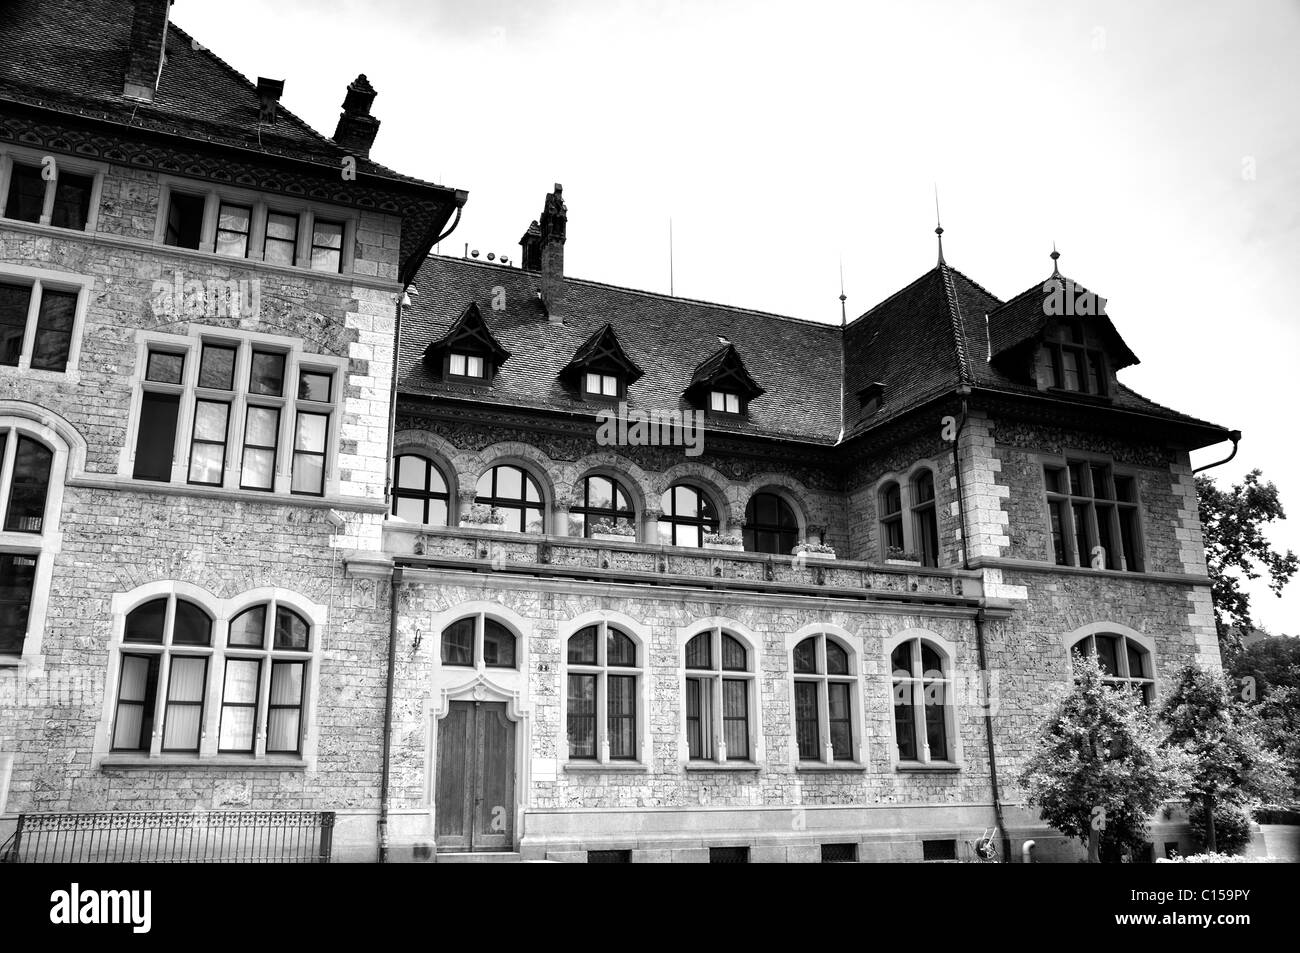 Swiss National Museum in Zurich - Stock Image